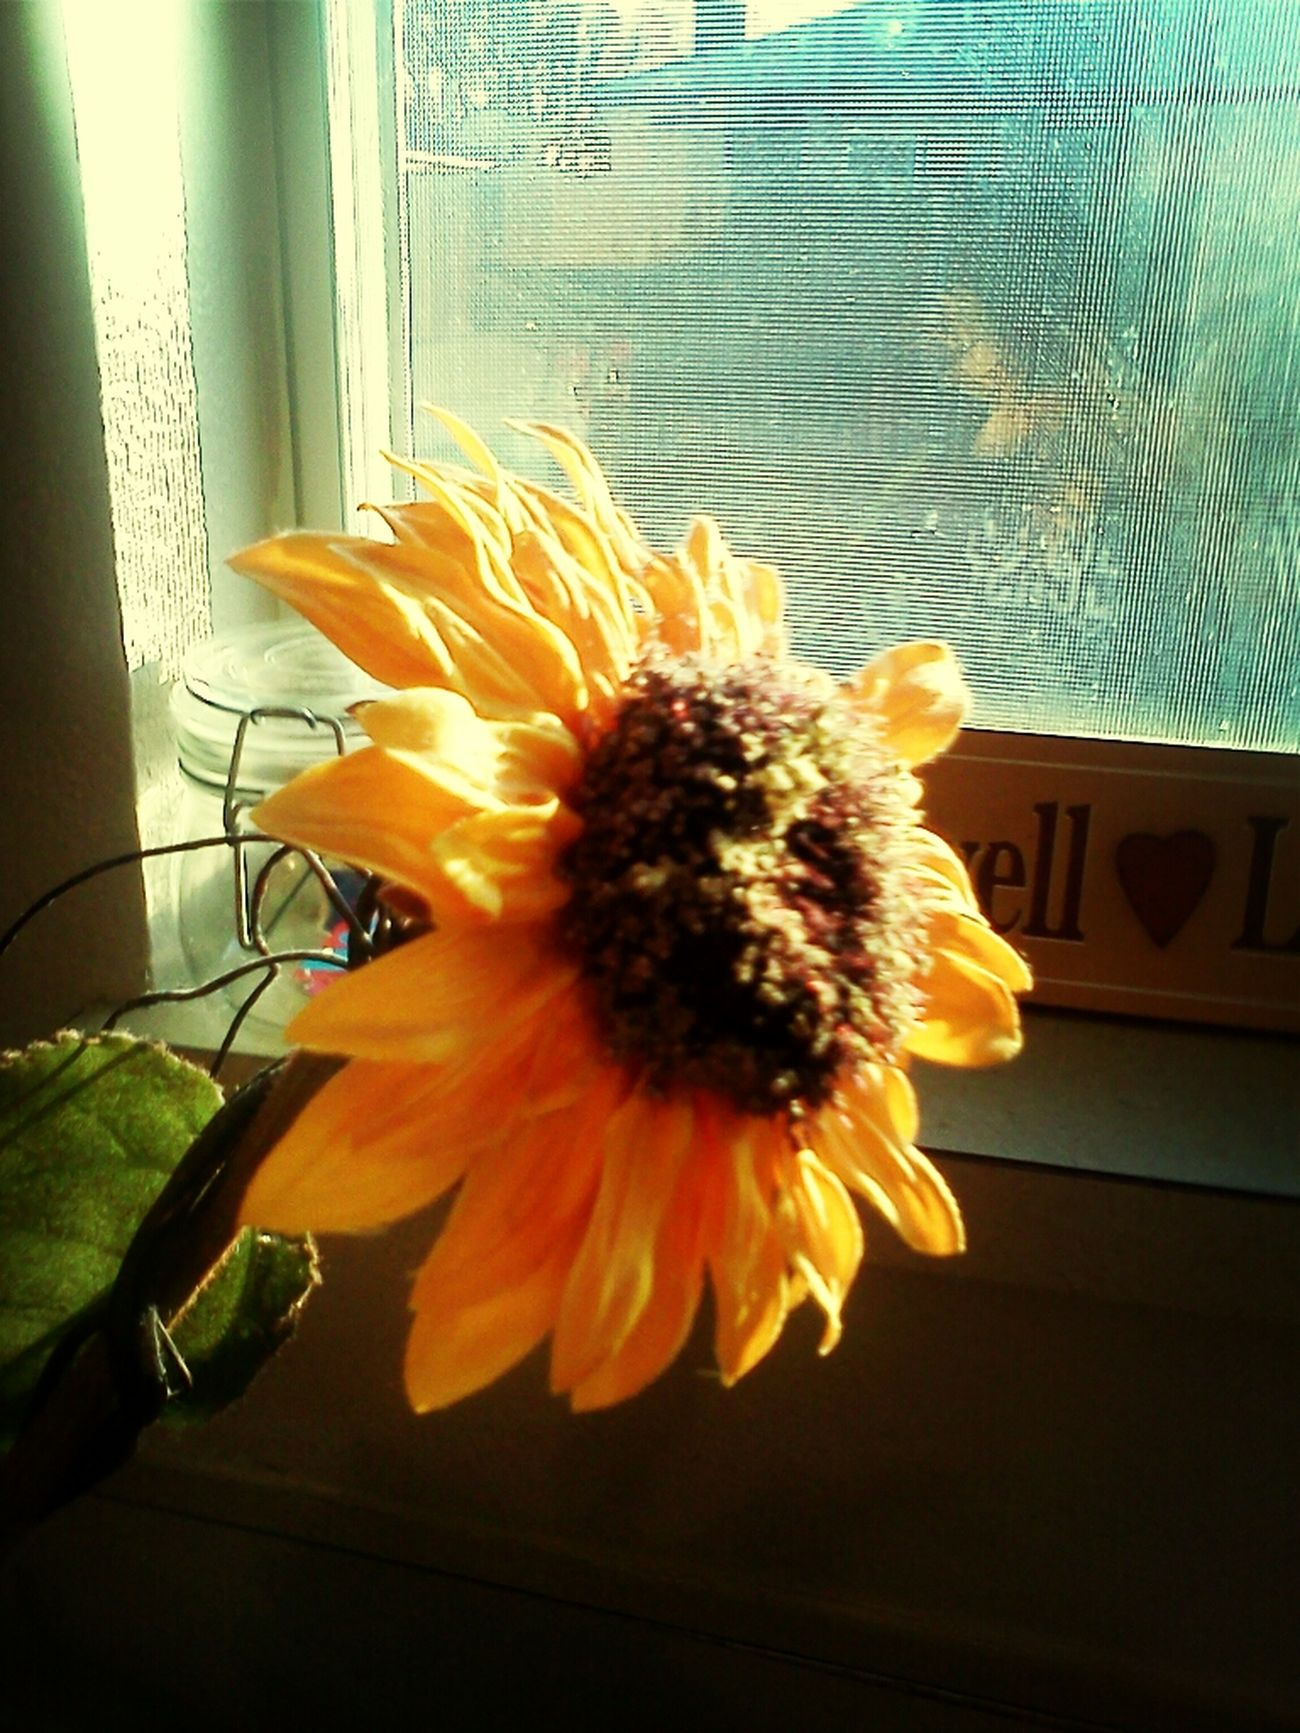 Your The Sun To My Flower